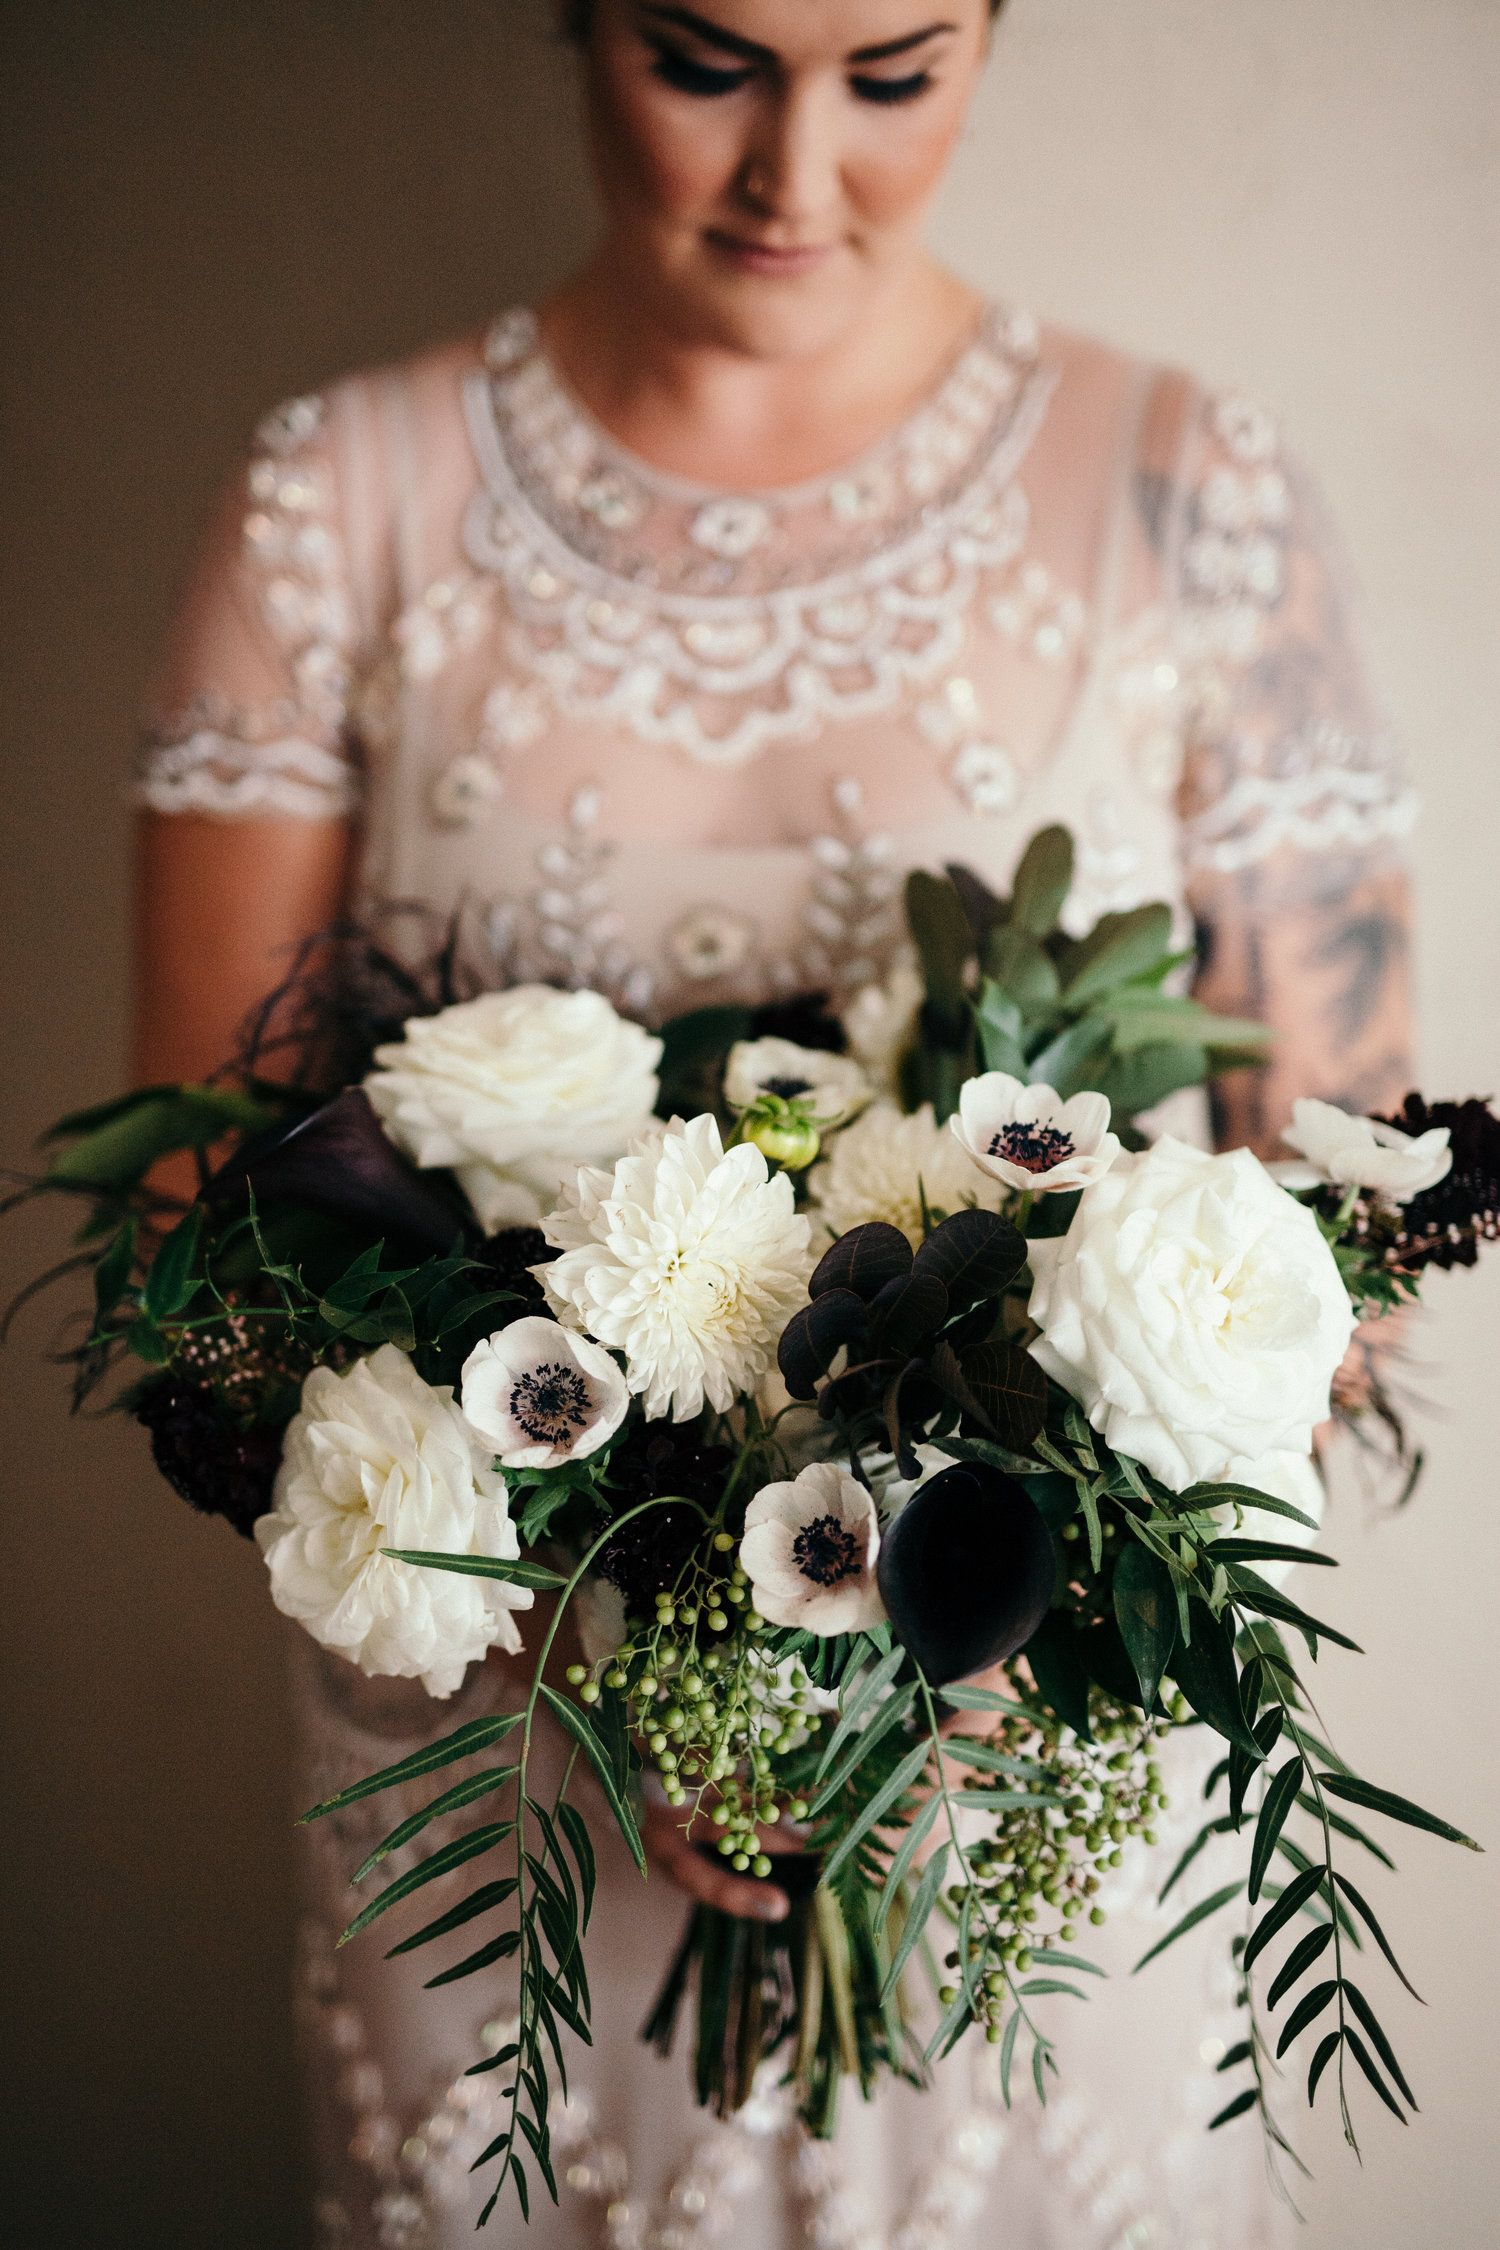 Flowers By Lace And Lilies Dark And Moody Bridal Bouquet Dahlia Garden Rose Anemone Calla Lily Wedding Bridal Bouquets White Flower Bouquet White Bouquet